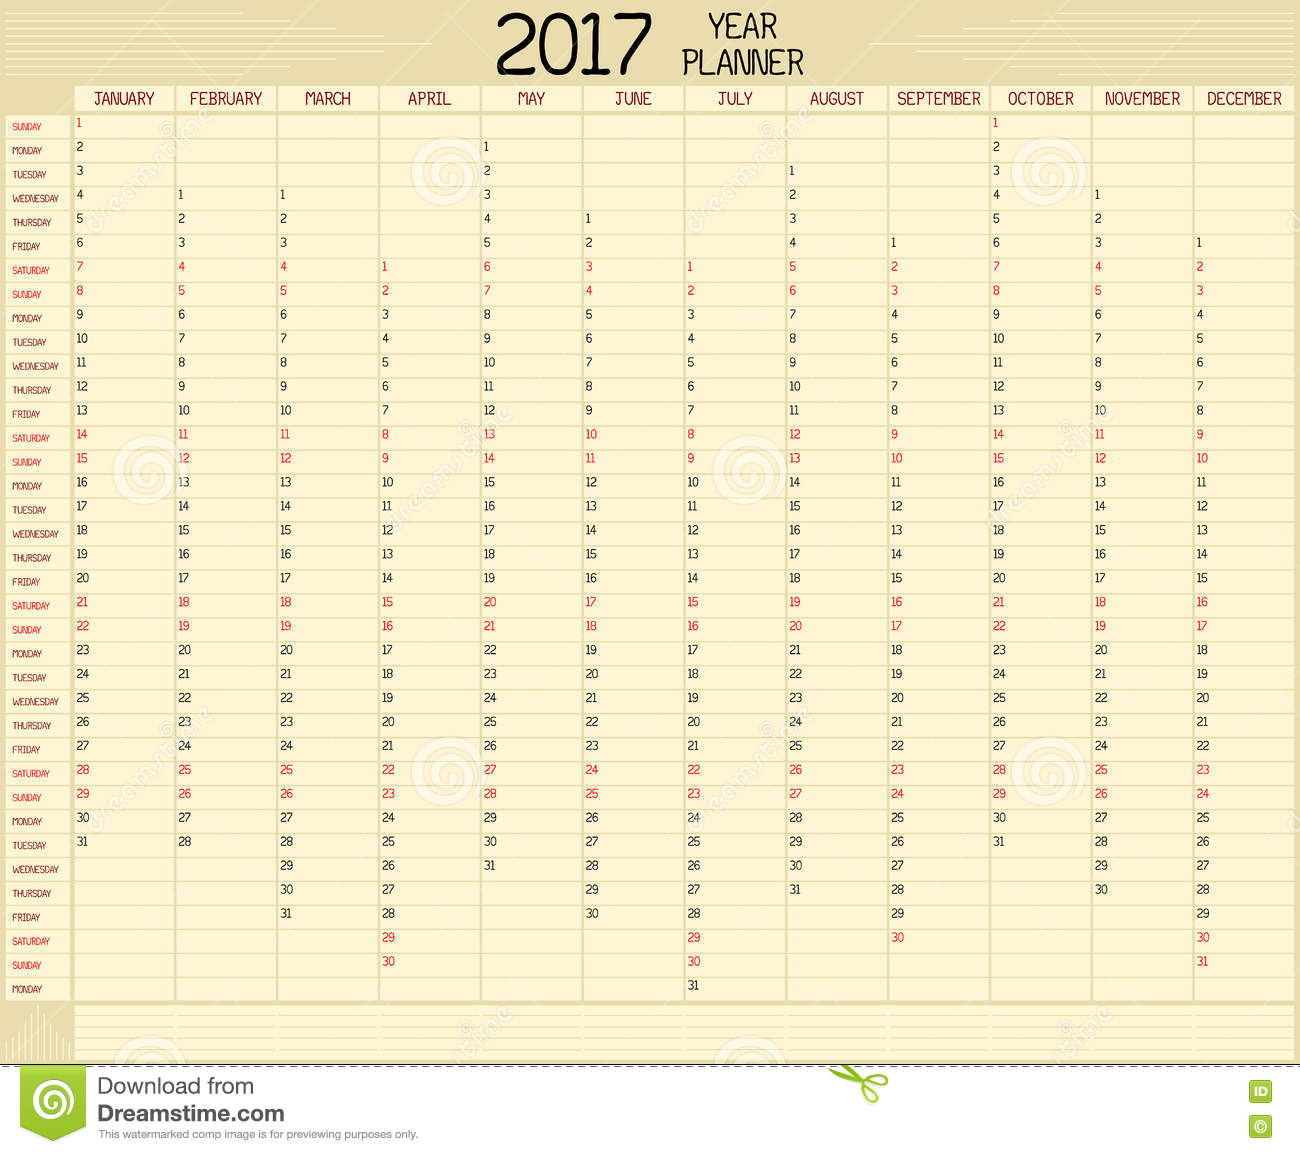 Year 2017 Planner Stock Vector Image 76779084